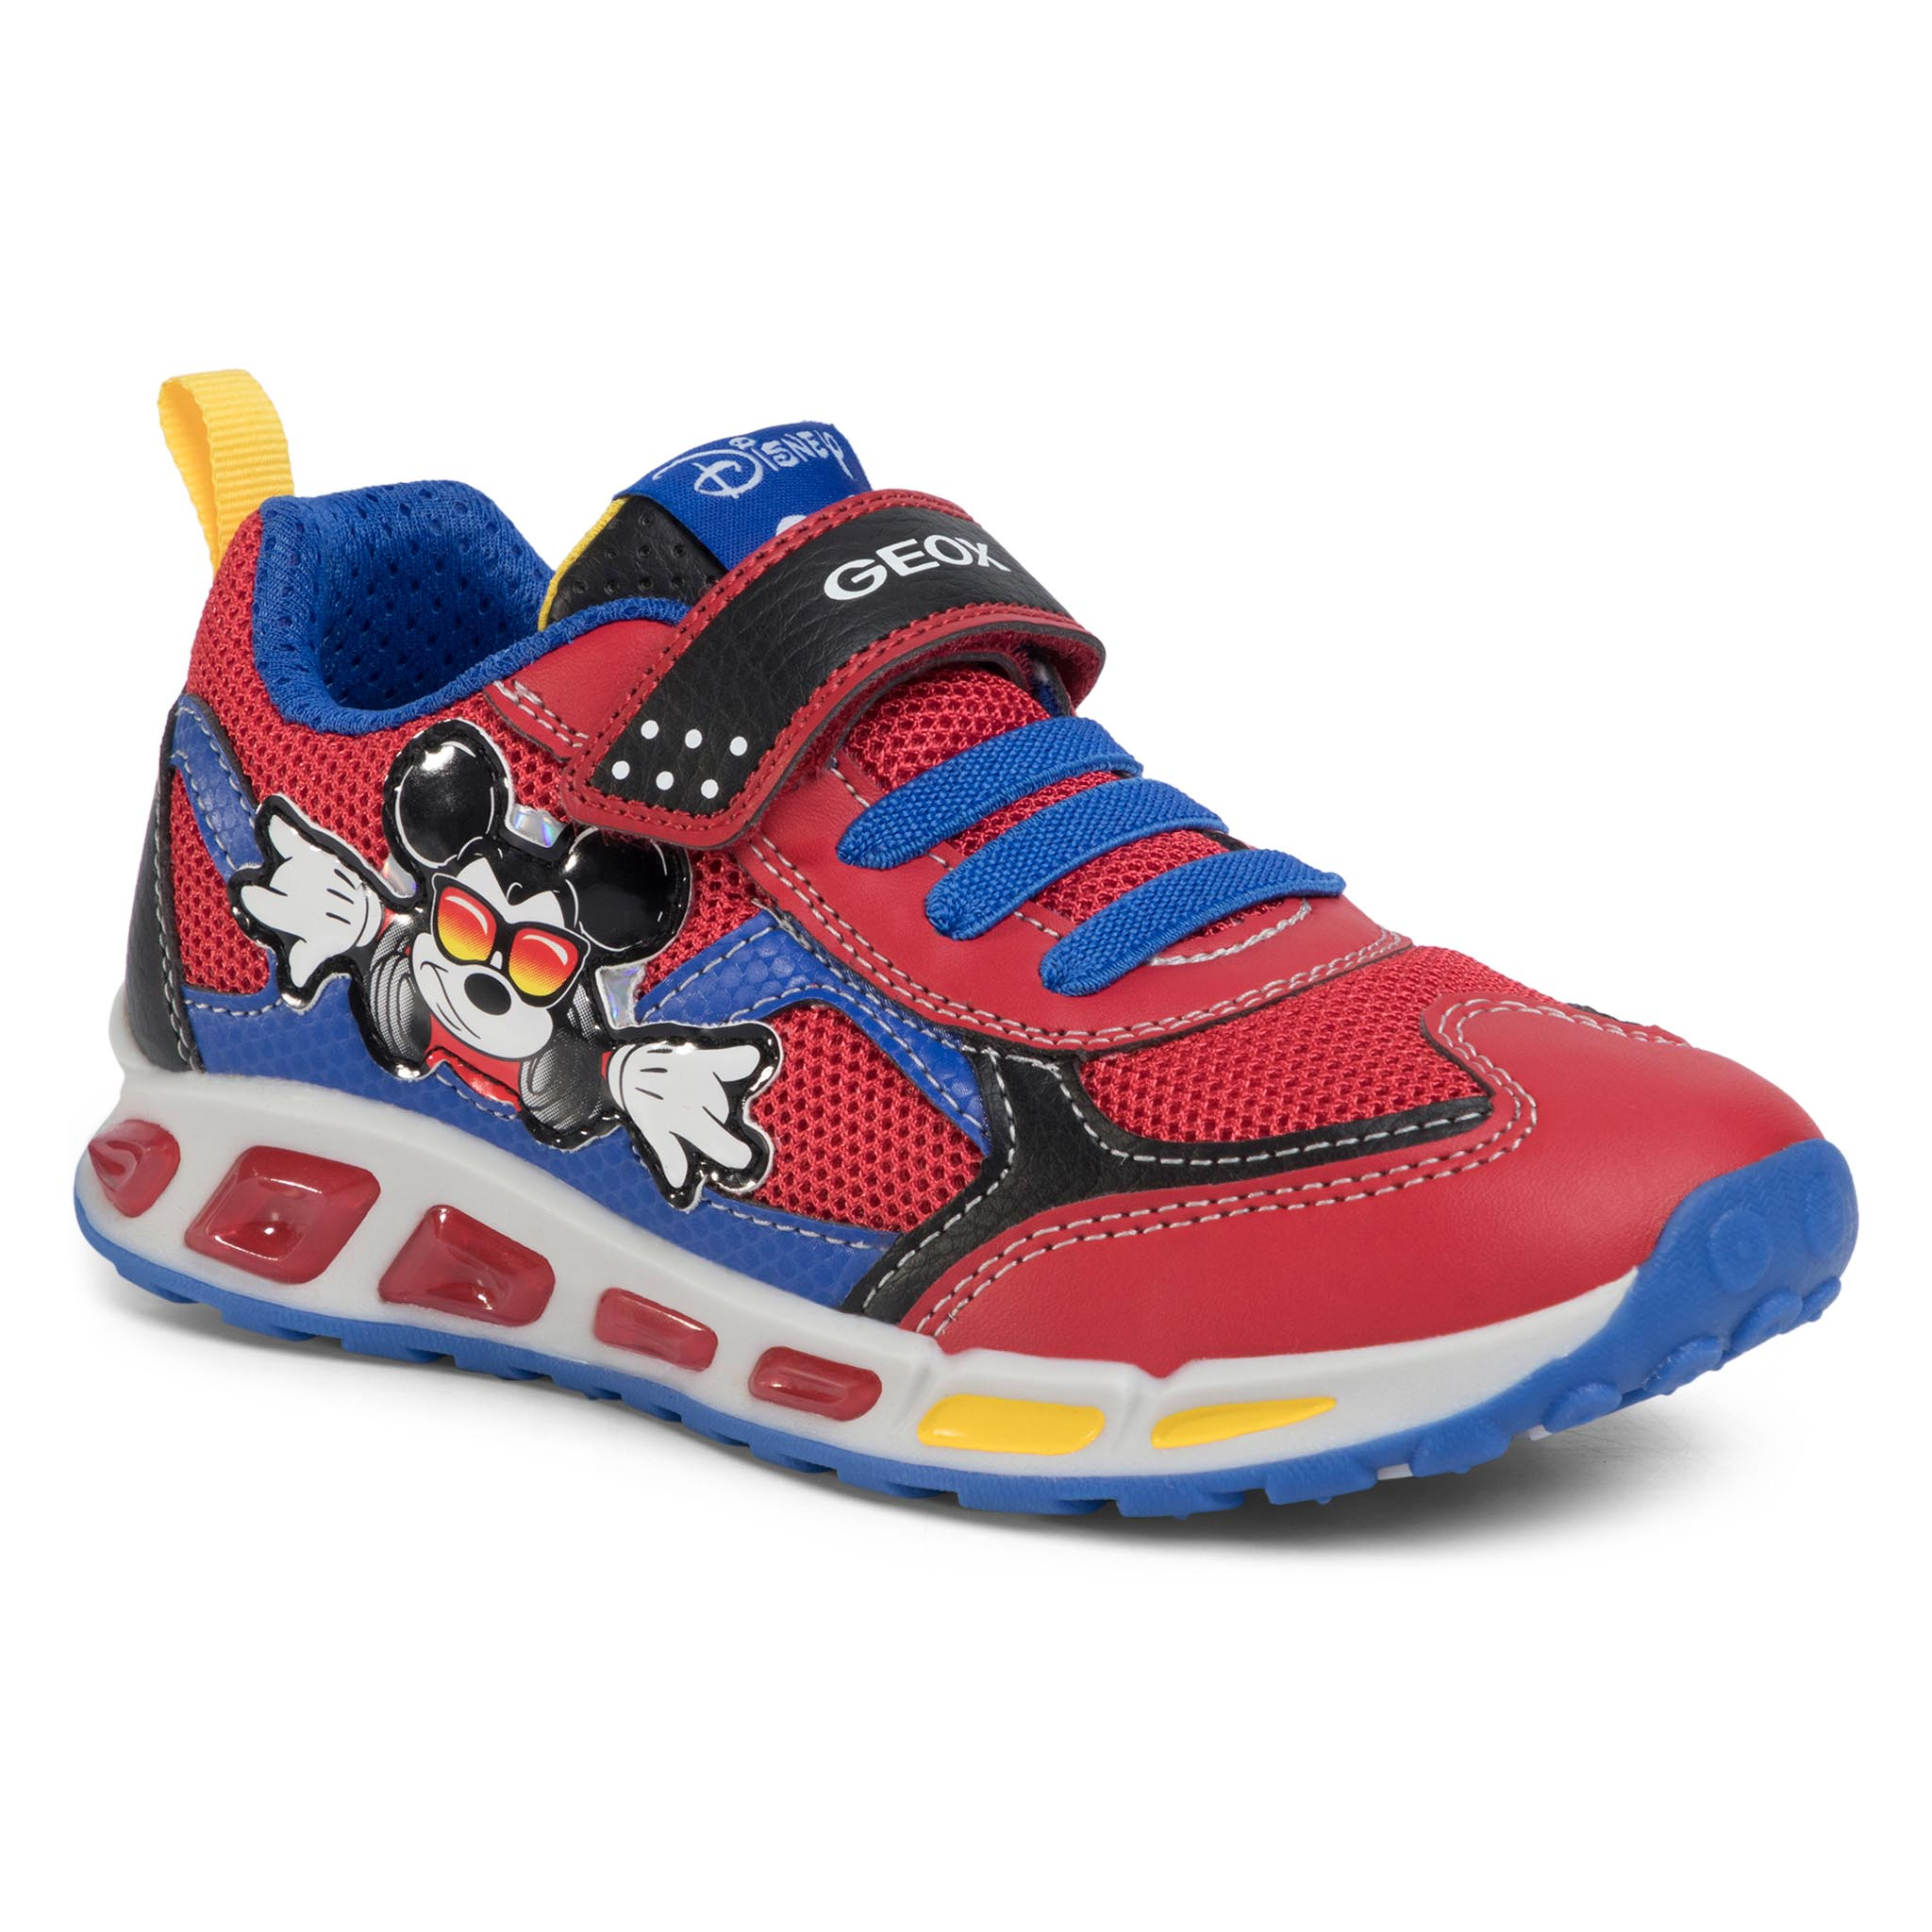 Sneakers GEOX - J Shuttle B. A J0294A 01454 C7213 D Red/Royal